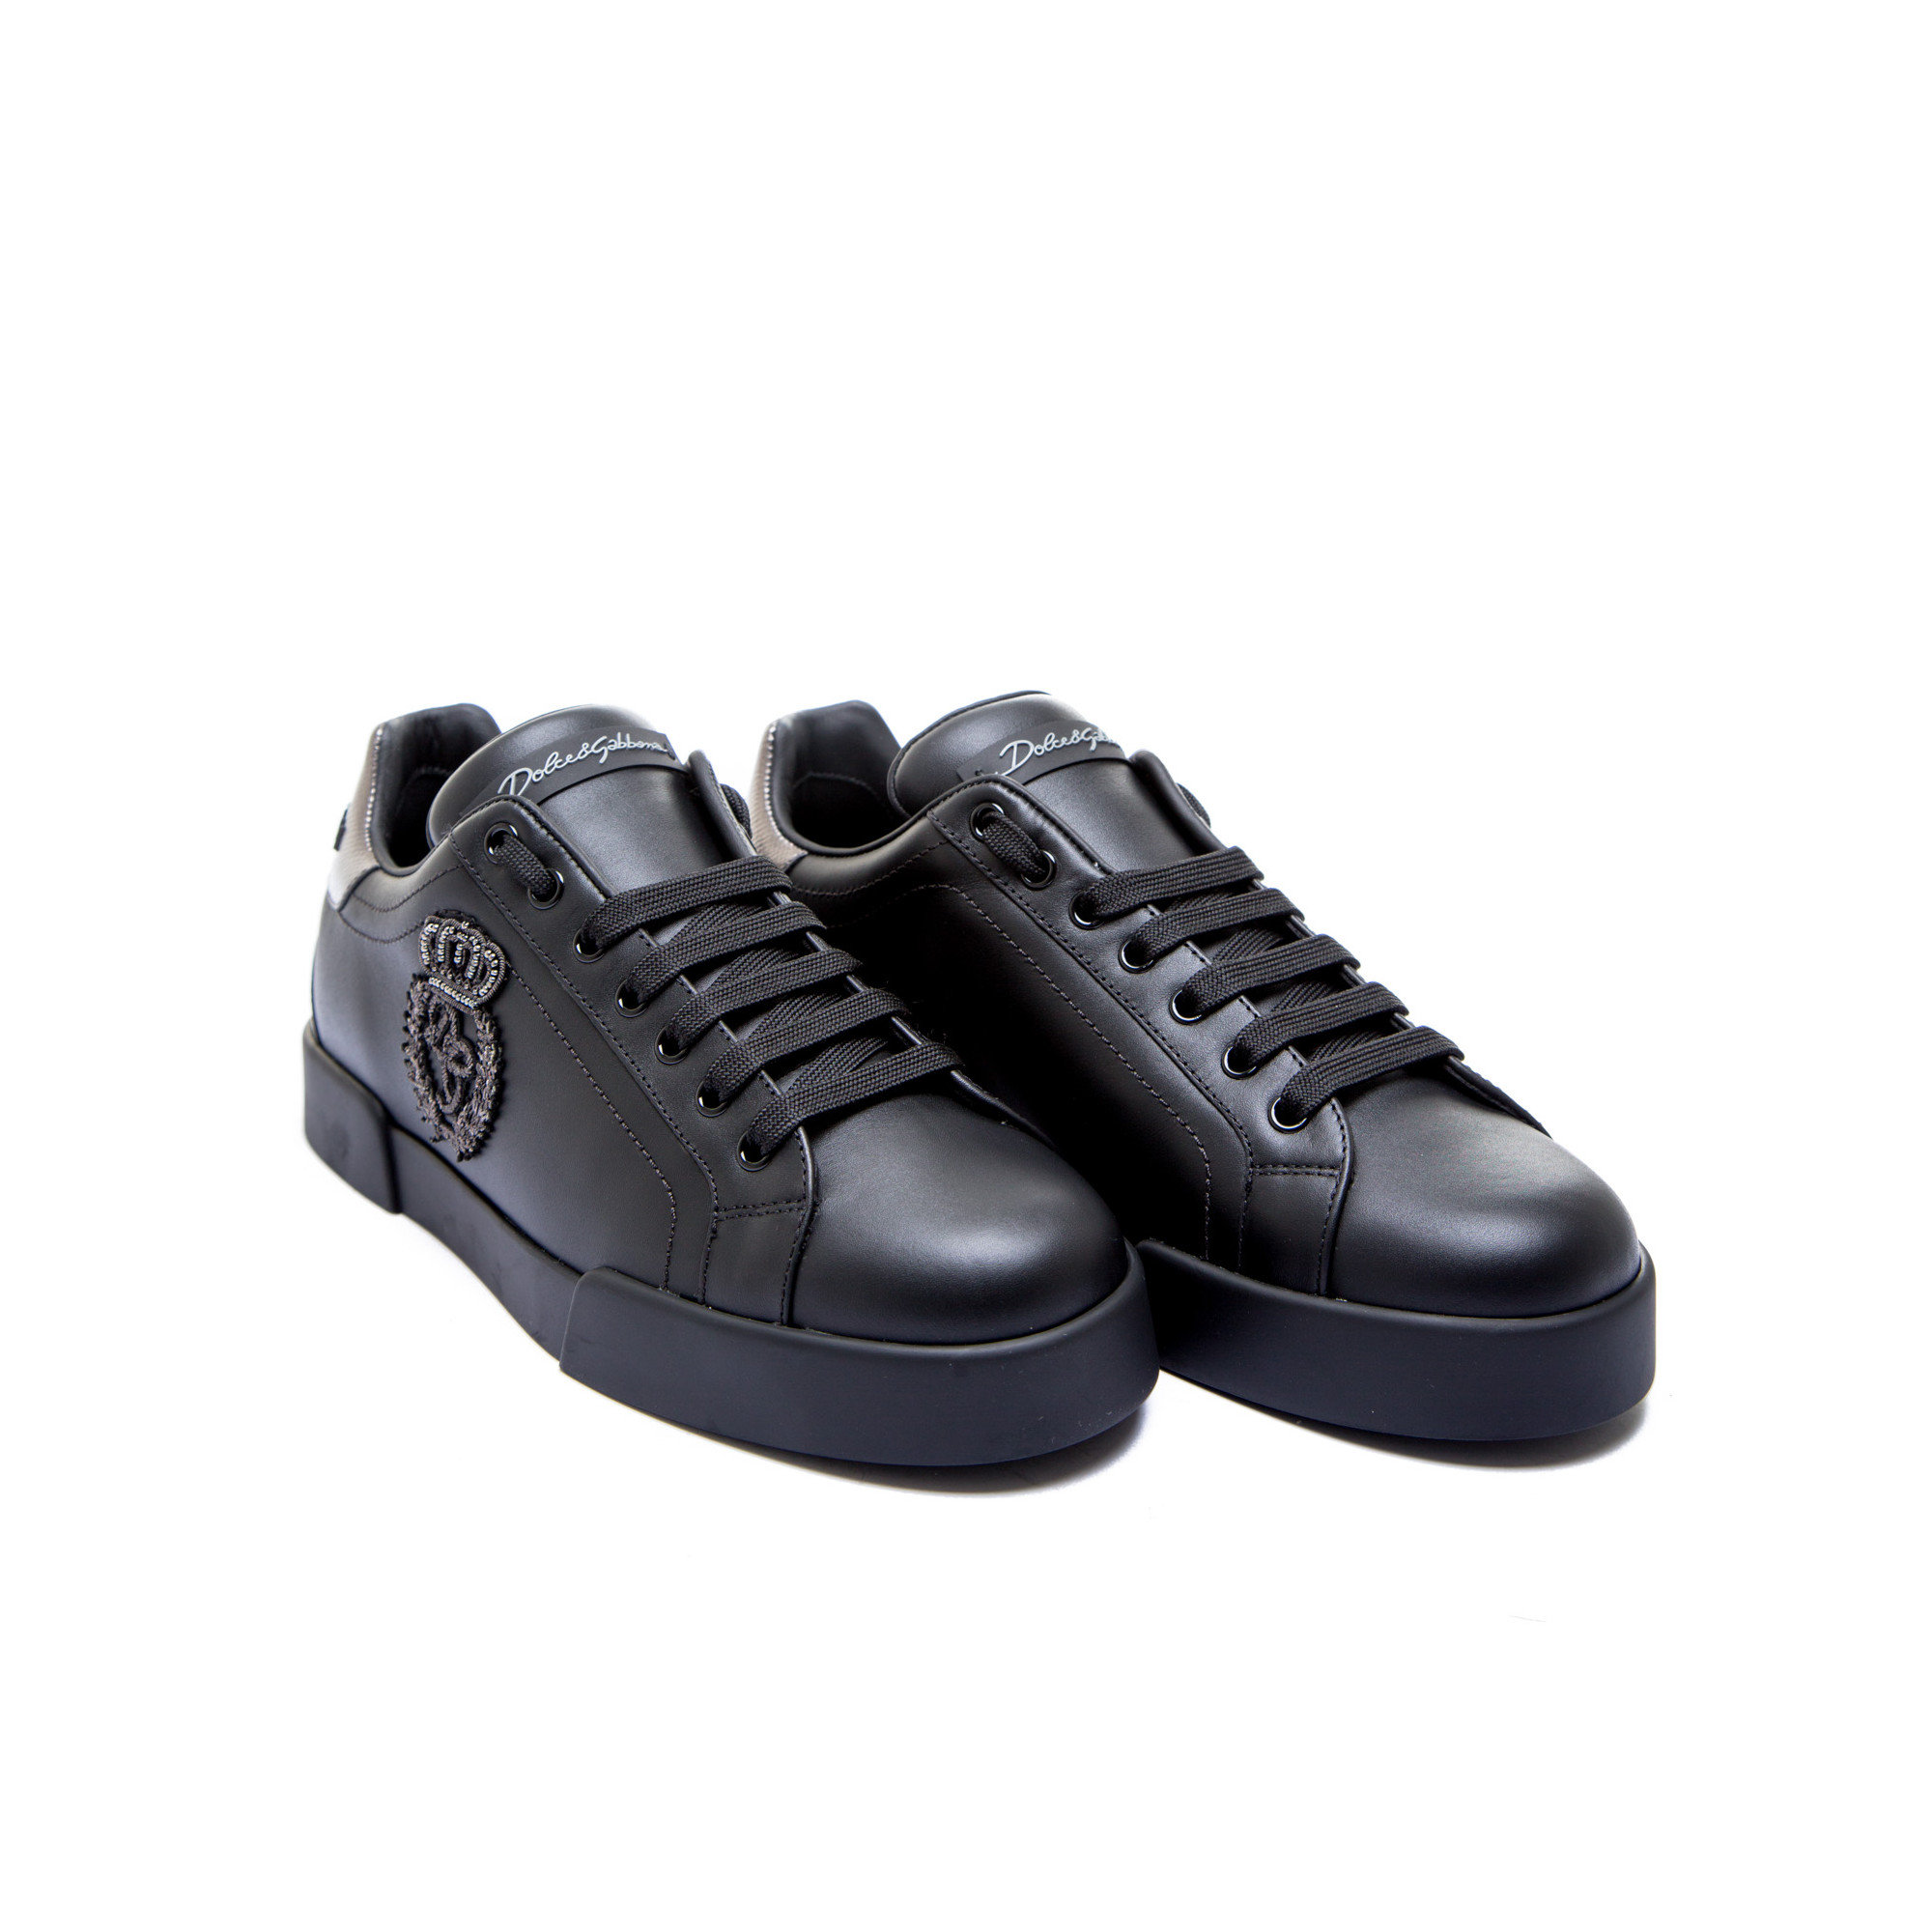 Chaussures Rouge Dolce & Gabbana Pour Les Hommes gMB04o